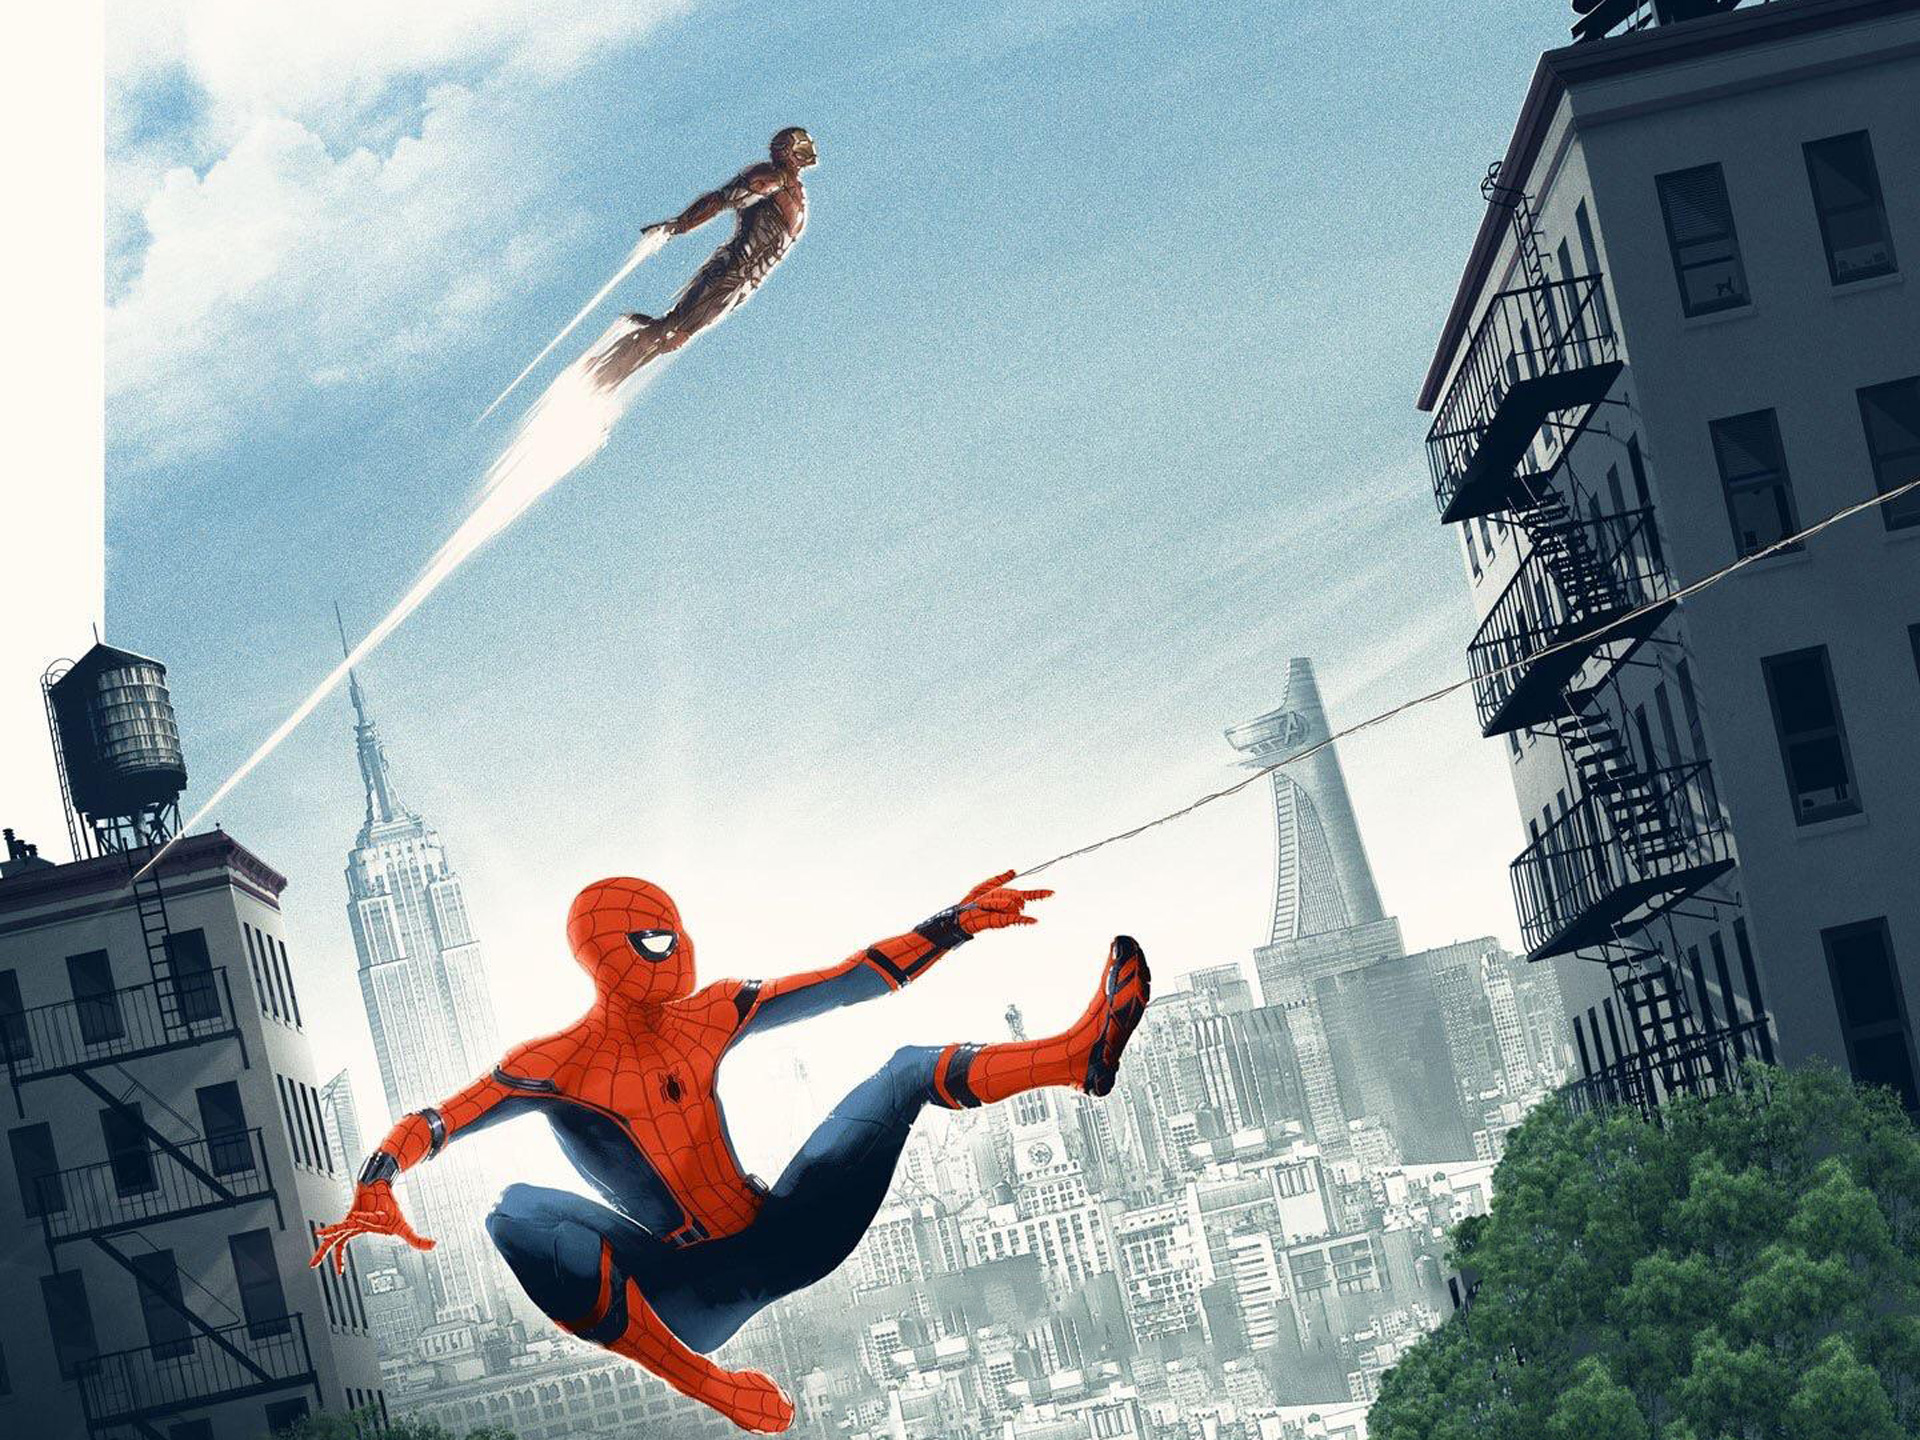 1920x1080 Spiderman Homecoming Artwork Poster Laptop Full Hd